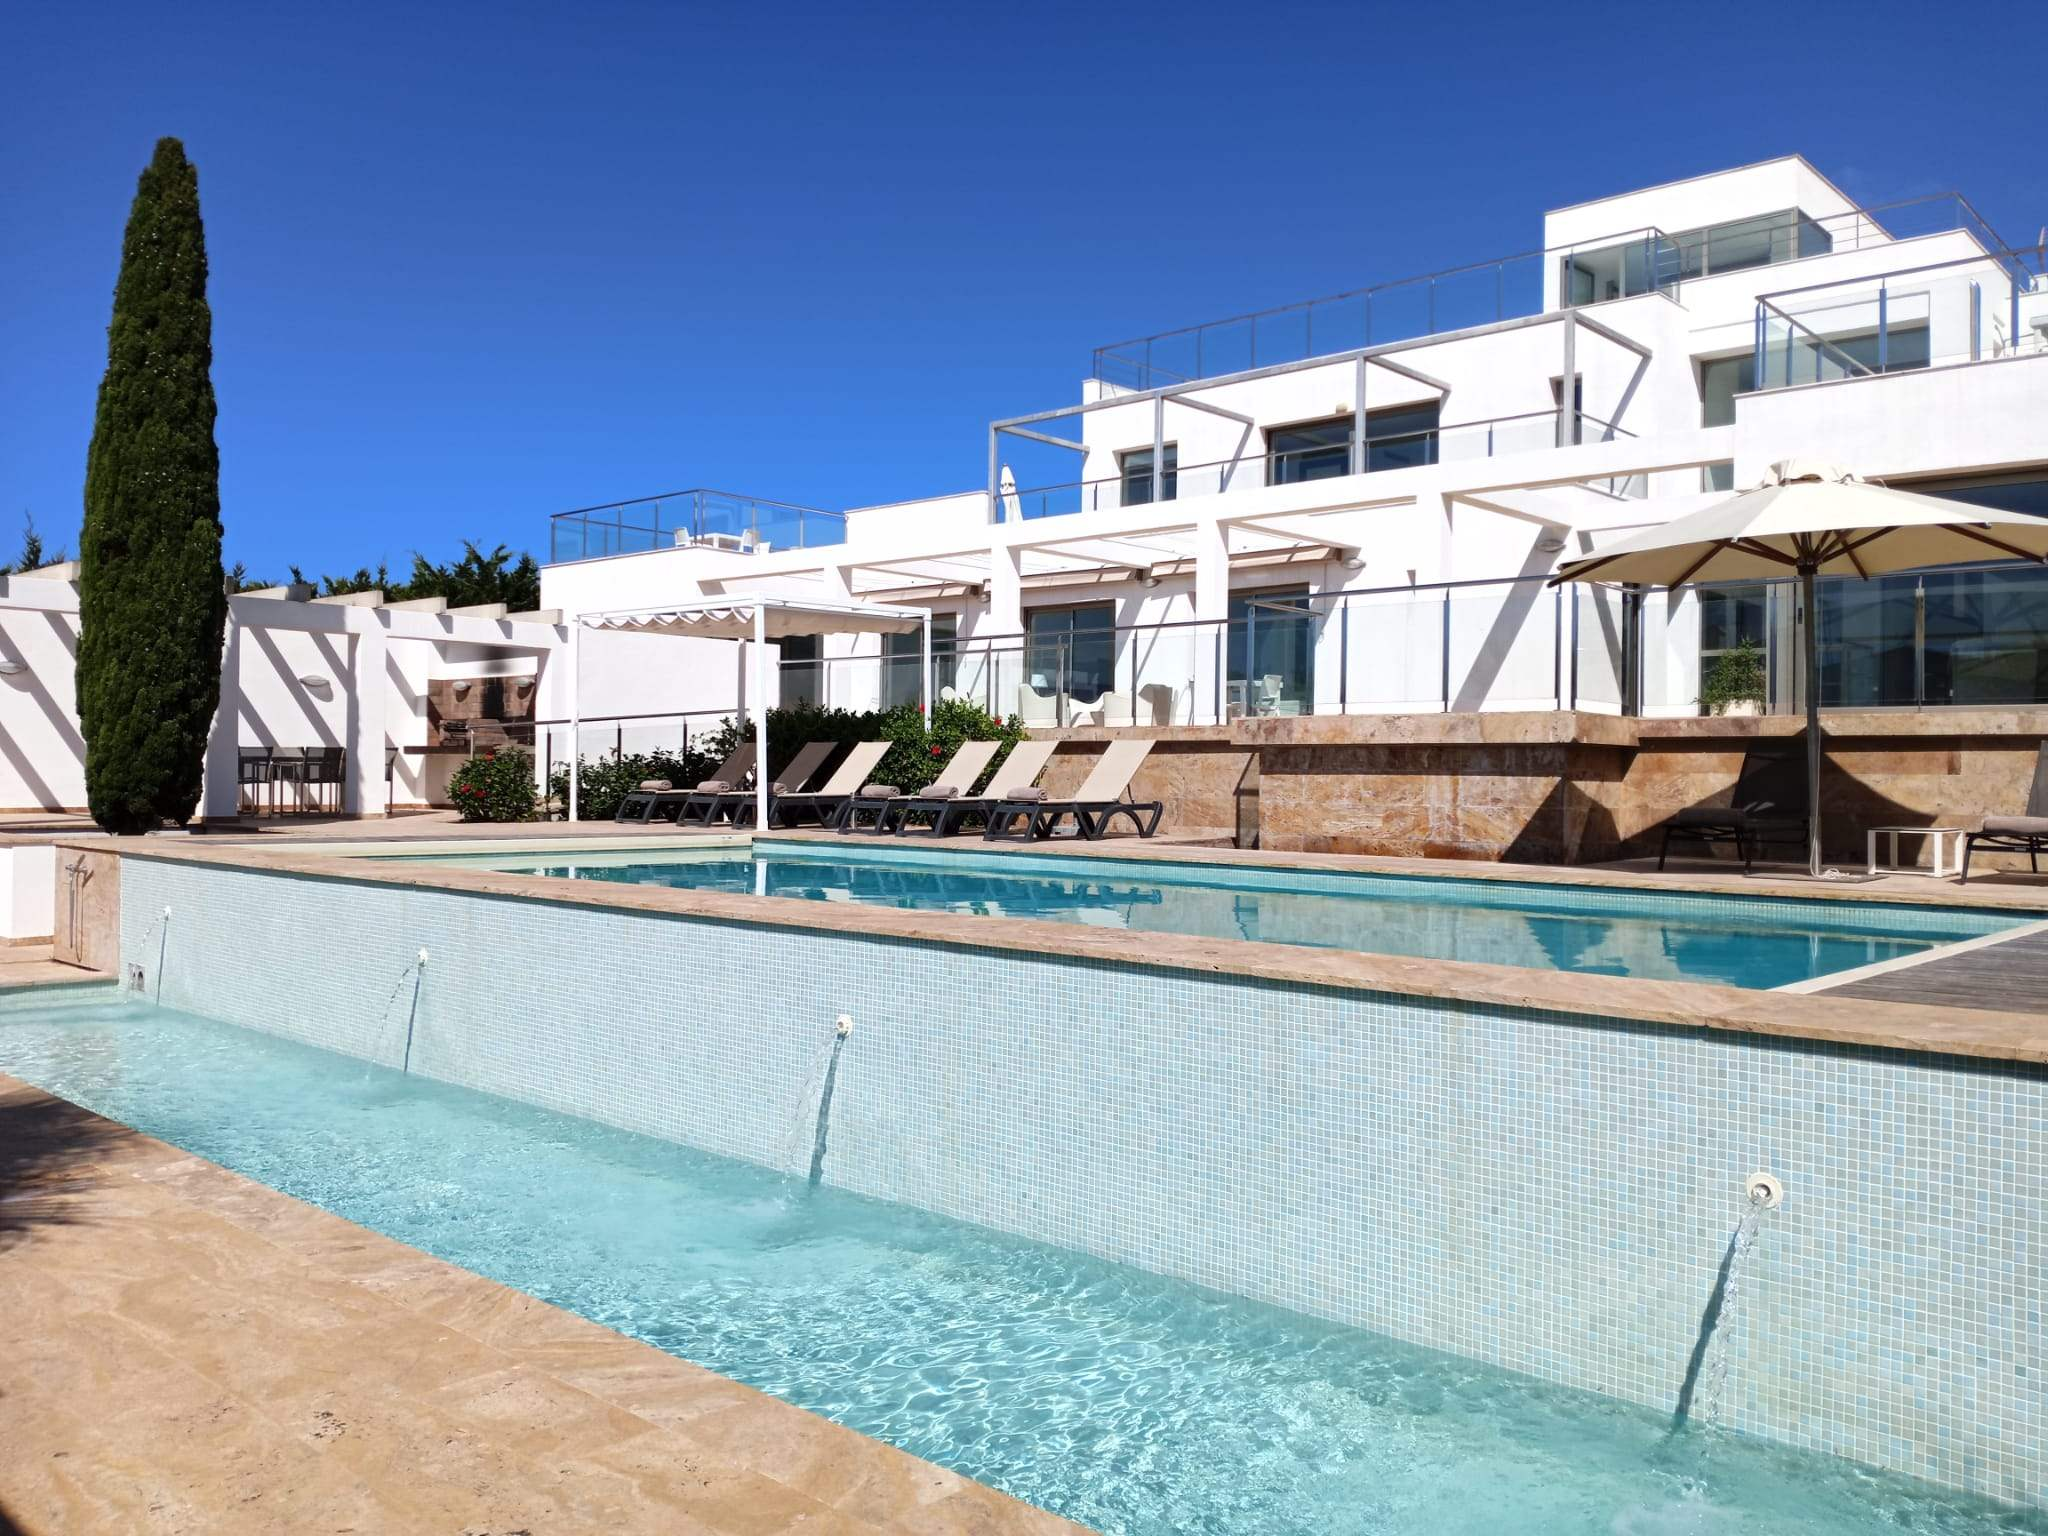 Casa Pitiusa, 4 Bedroom rate, 4 bedroom villa in Mahon, San Luis & South East, Menorca Photo #7